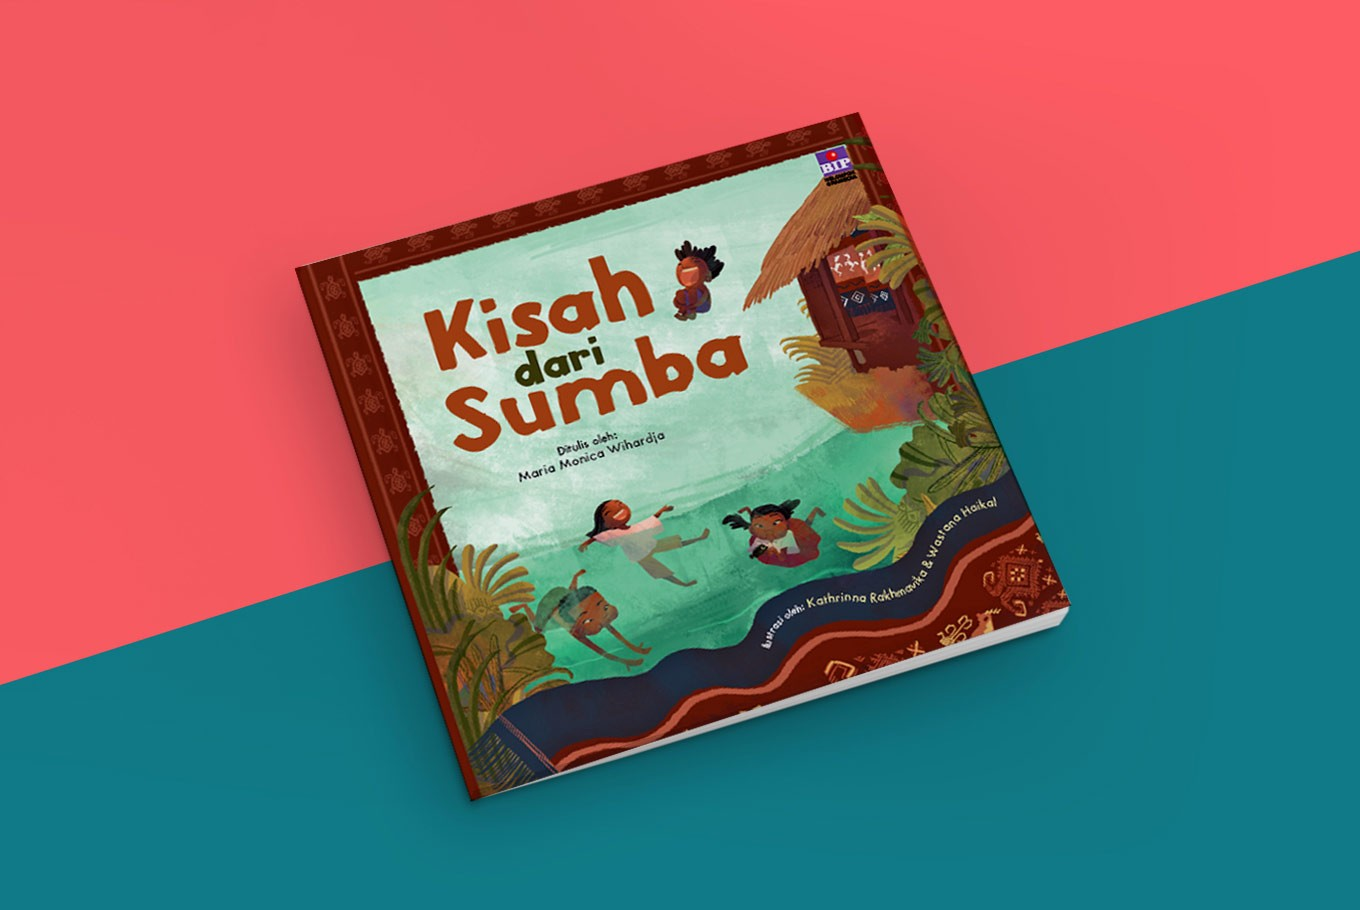 'Kisah': Tells tales for and by children